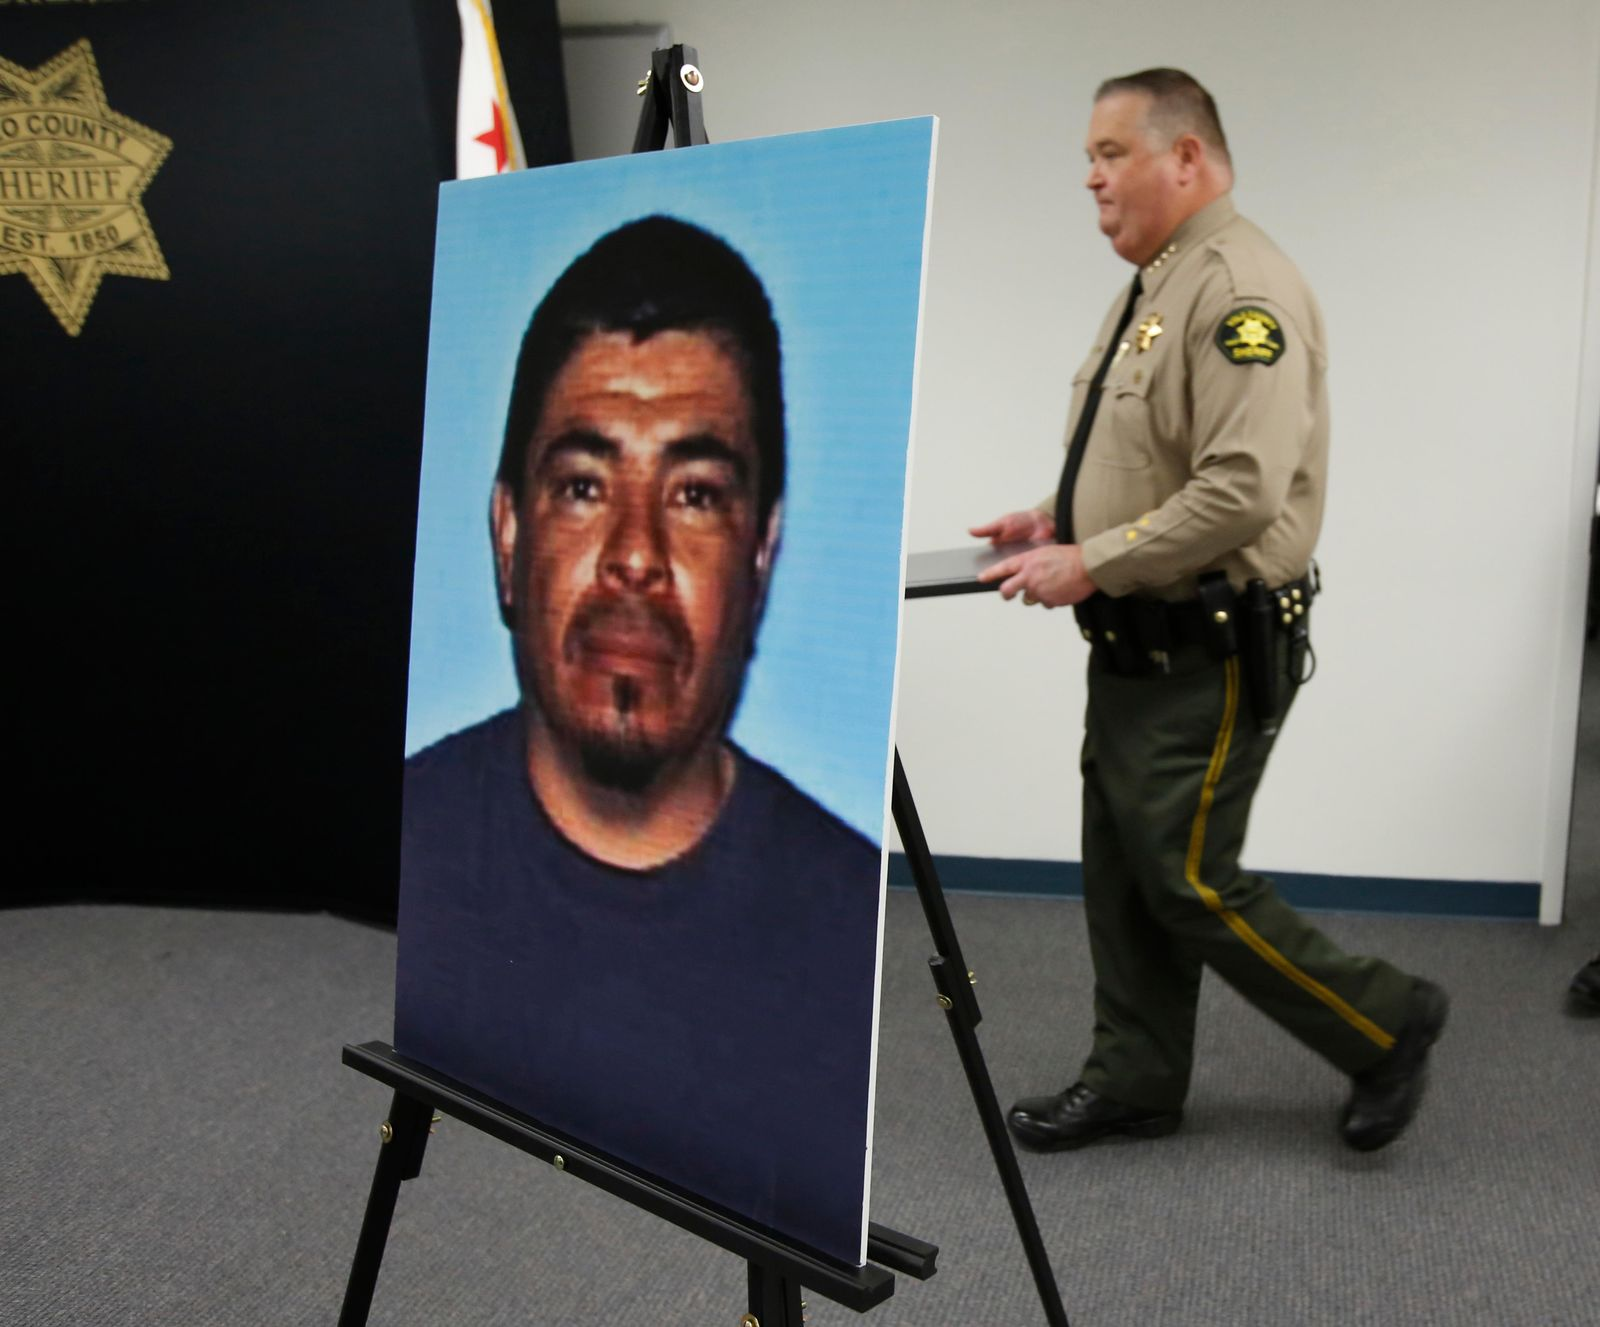 A photo of Paul Perez, who has been arrested in the deaths of his five children, is displayed as Yolo County Sheriff Tom Lopez, right, enters a news conference in Woodland, Calif., Monday, Jan. 27, 2020. Paul Perez, 57, has been arrested in the decades-old killings of five of his infant children, a case the sheriff said had haunted his agency for years, the Yolo County Sheriff's Office said Monday, Jan. 27, 2020. (AP Photo/Rich Pedroncelli)